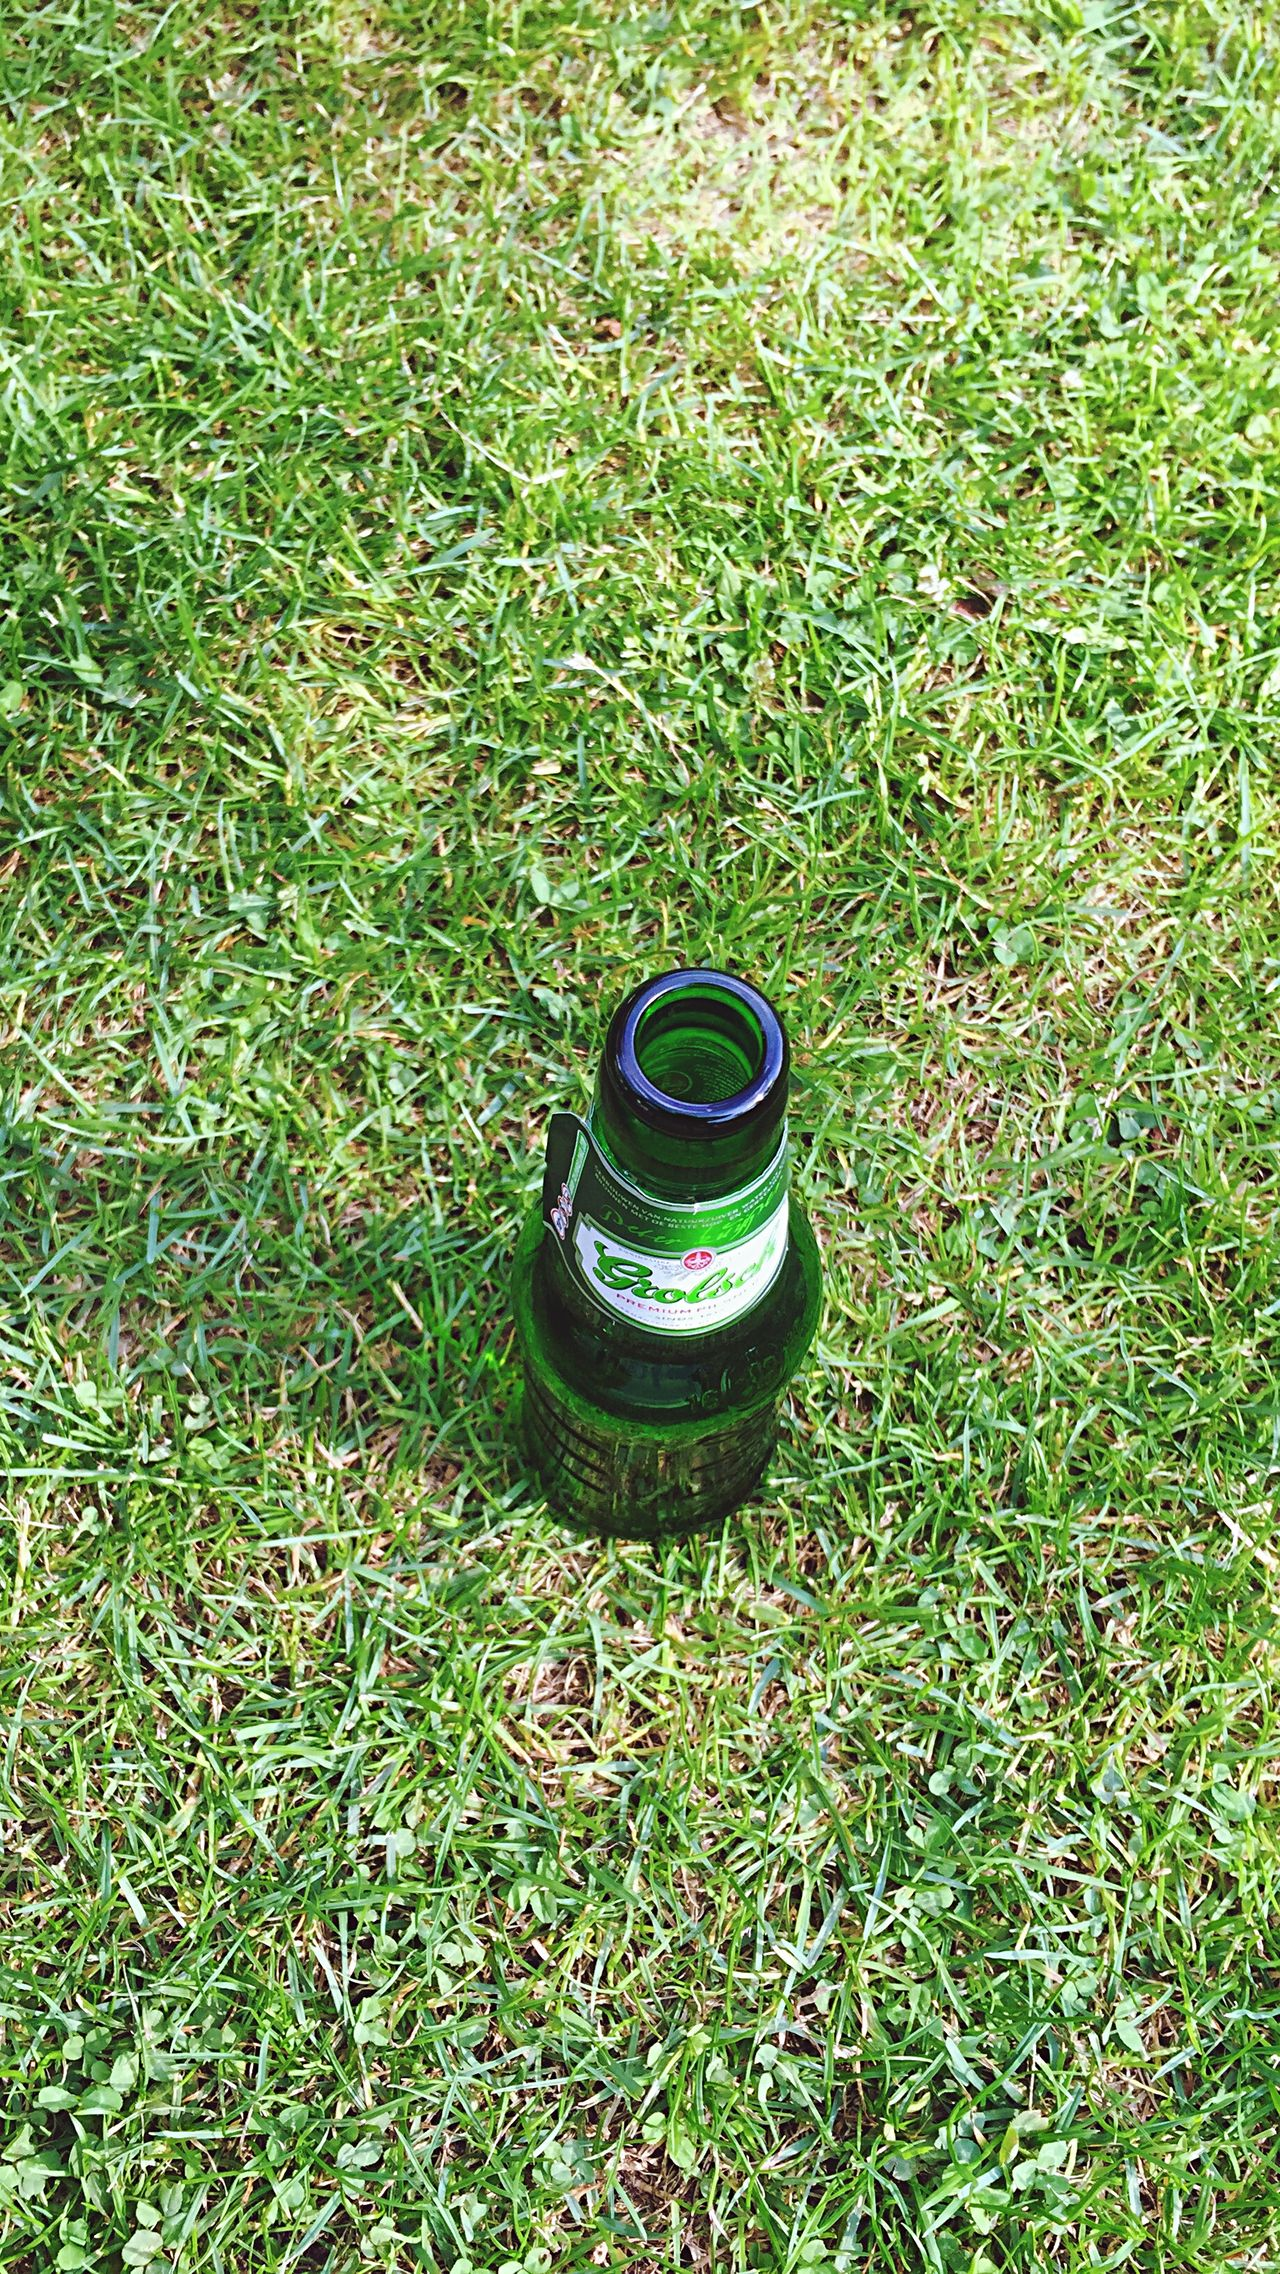 Nature On Your Doorstep EE Love Connection! Eye4photography  Maarn Taking Photos Grass Beer Party Camping Streetphotography another gr8 weekend, tempus fugit 😃